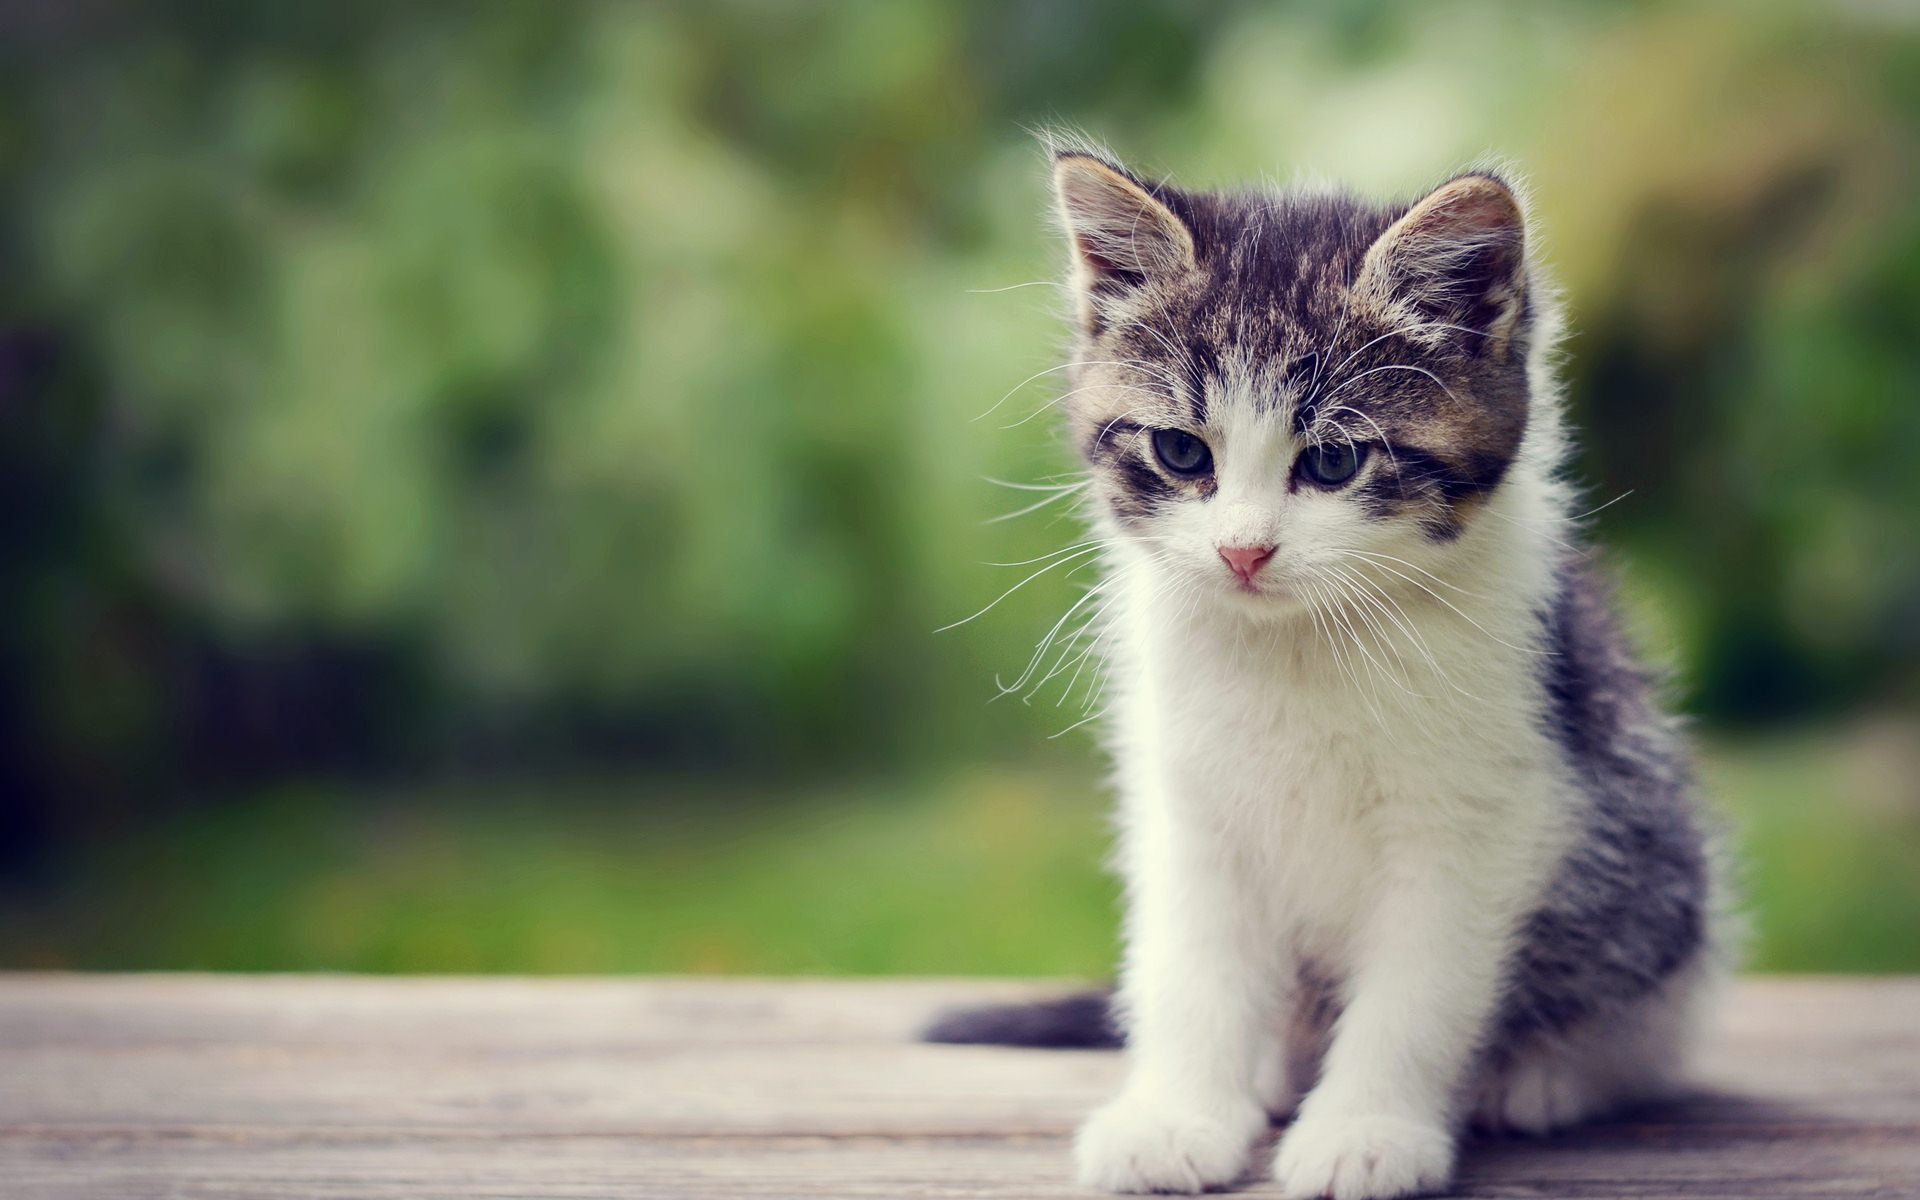 cute cats hd wallpapers - photo #33